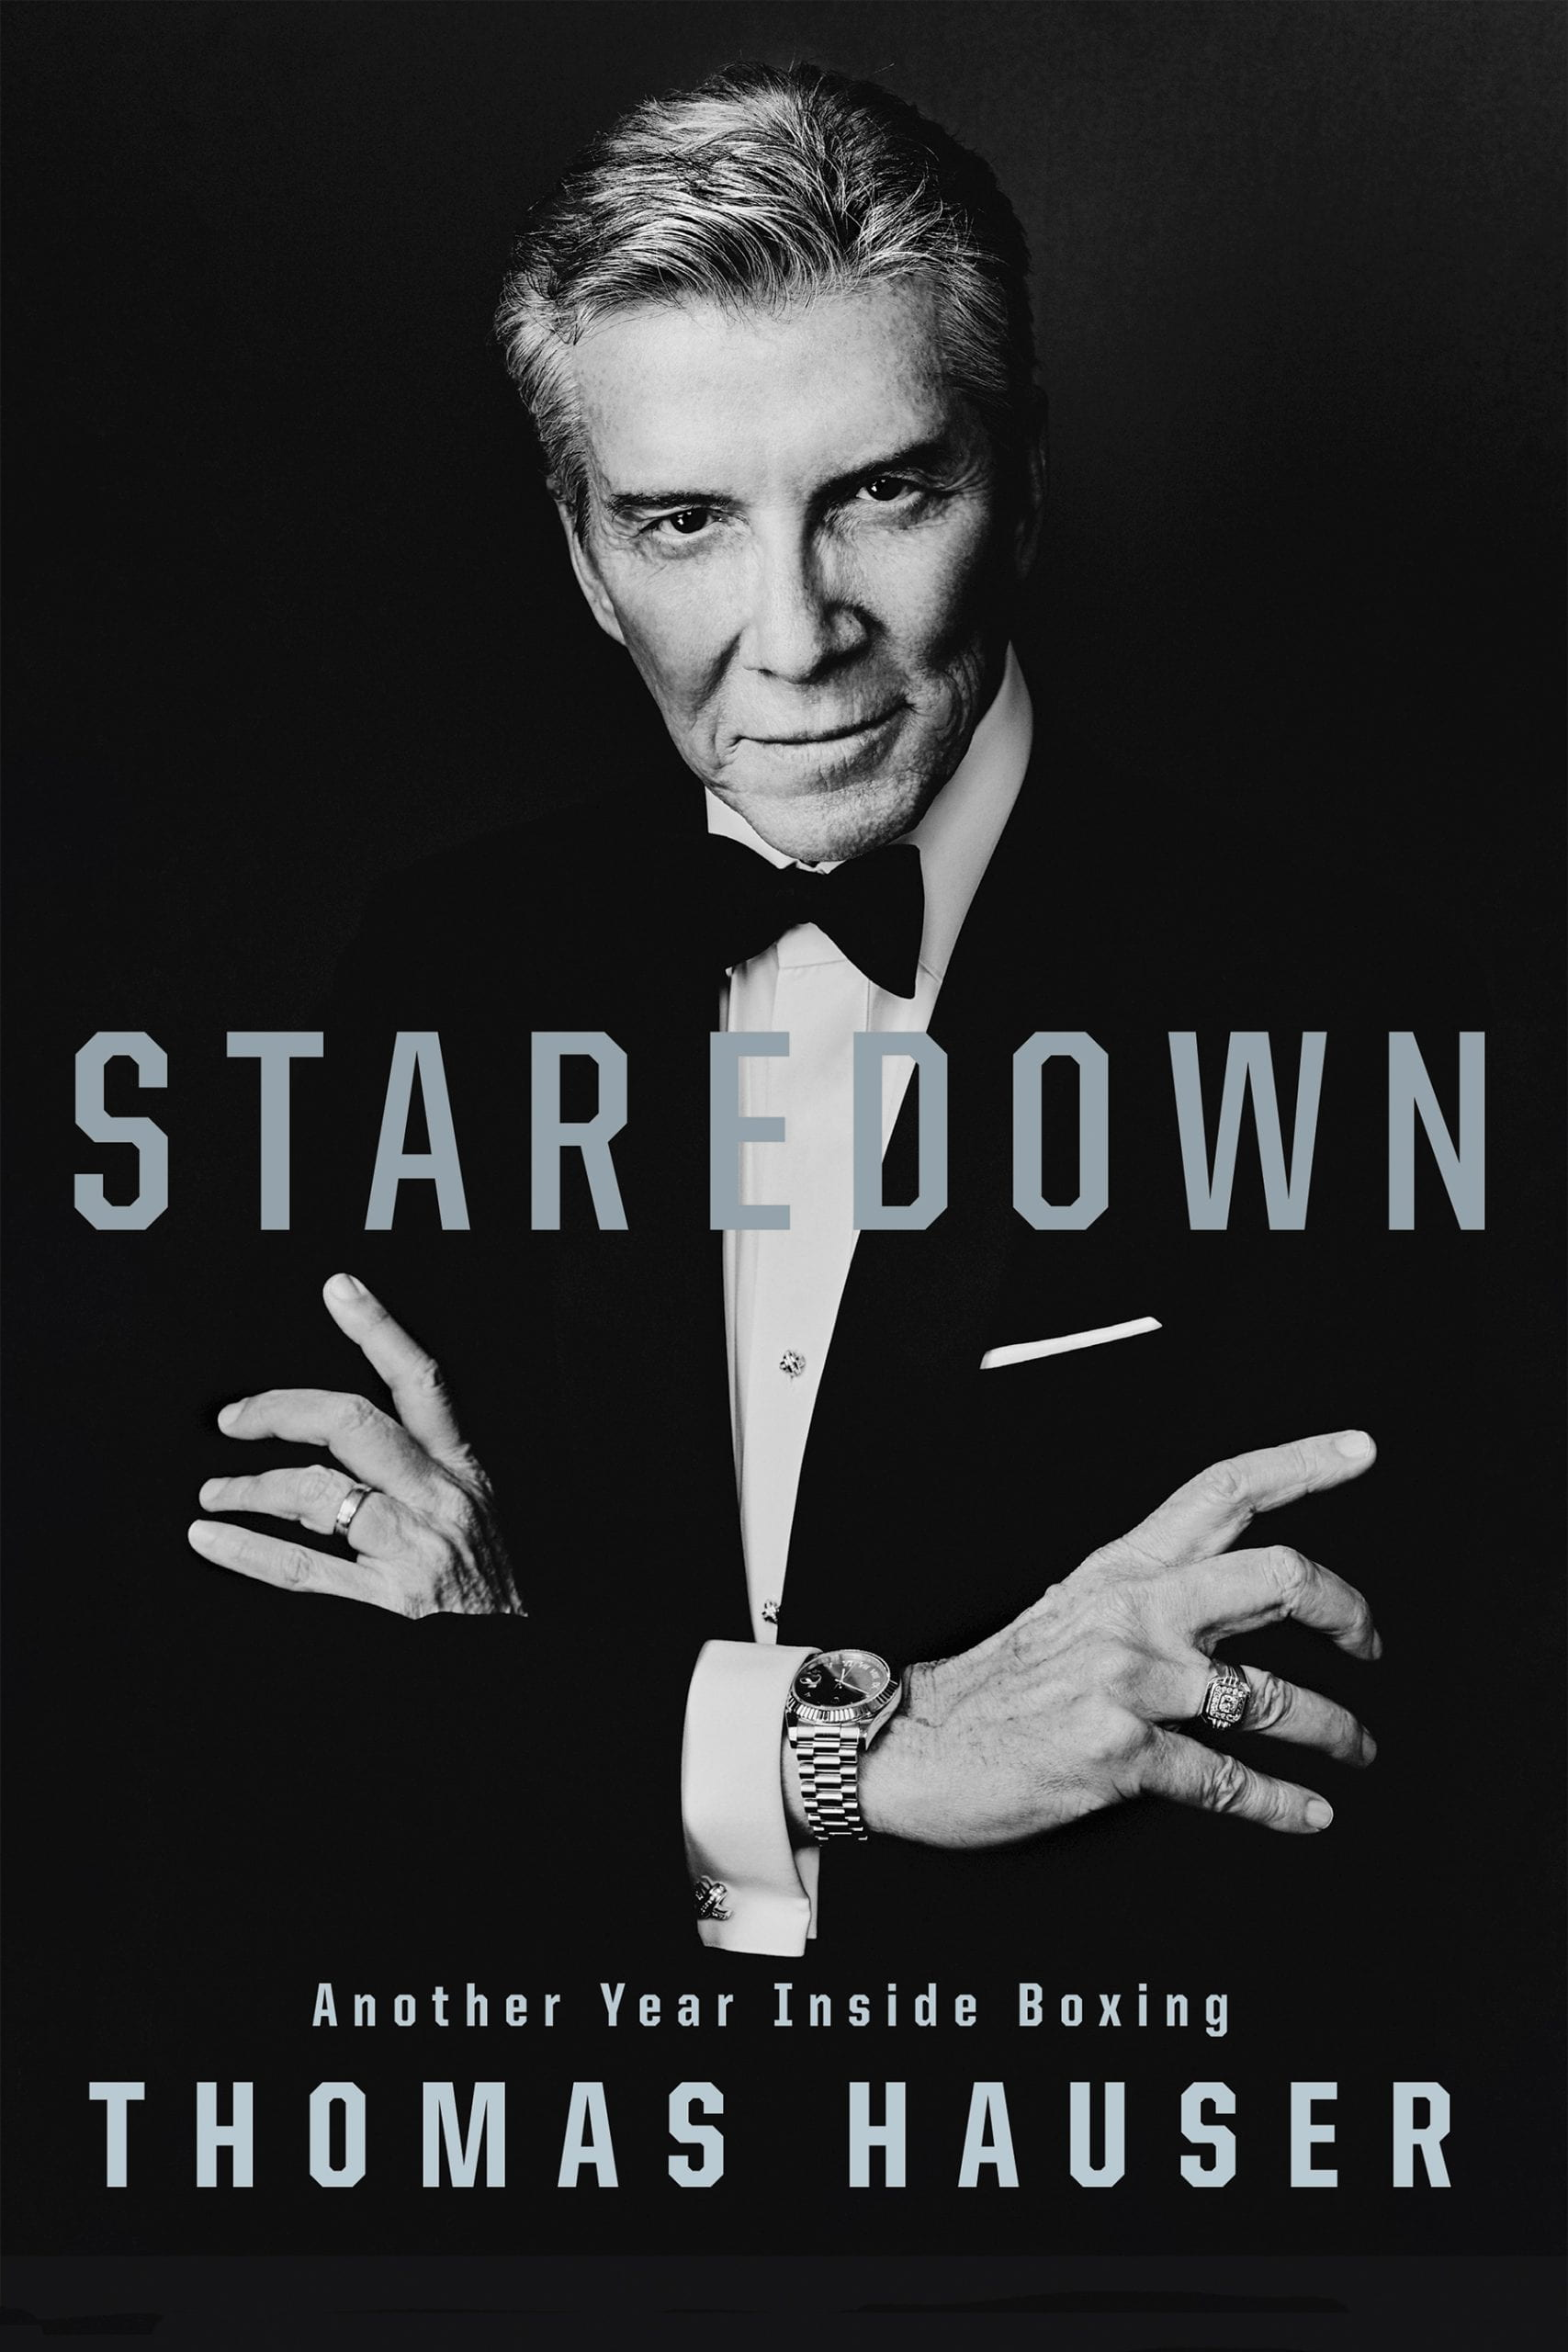 cover image for Staredown by Thomas Hauser